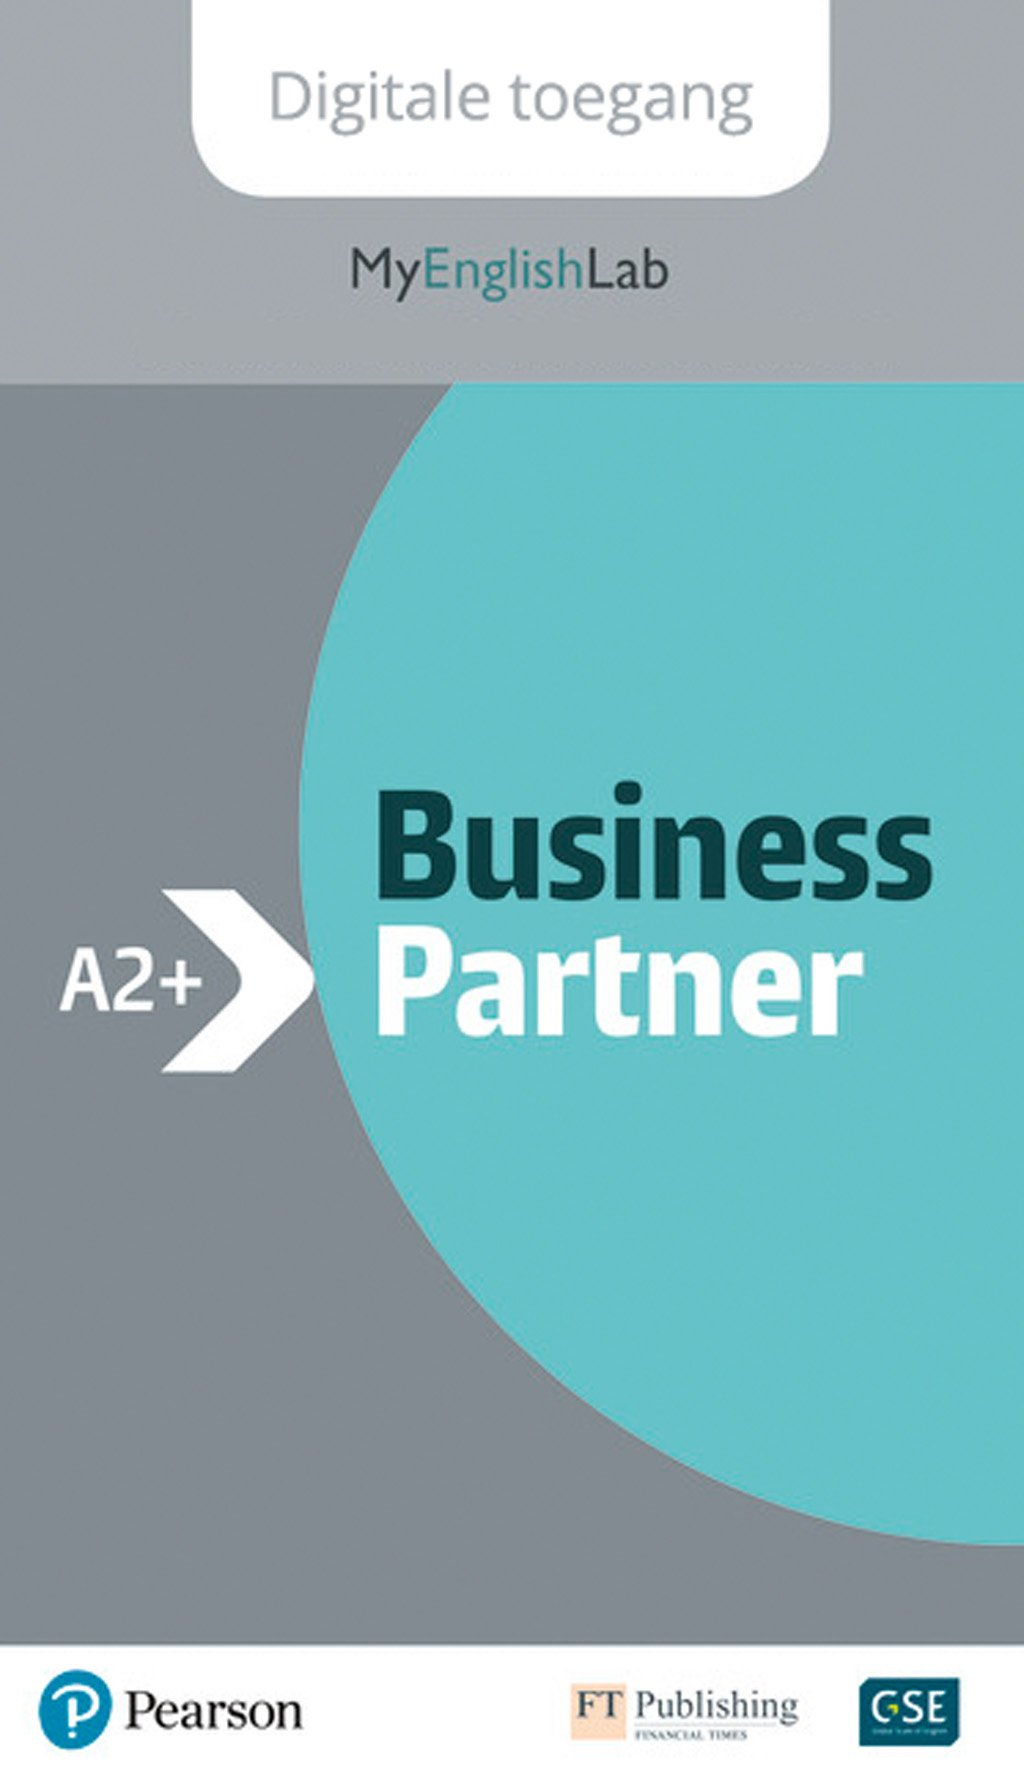 Business Partner A2+ MyEnglishLab